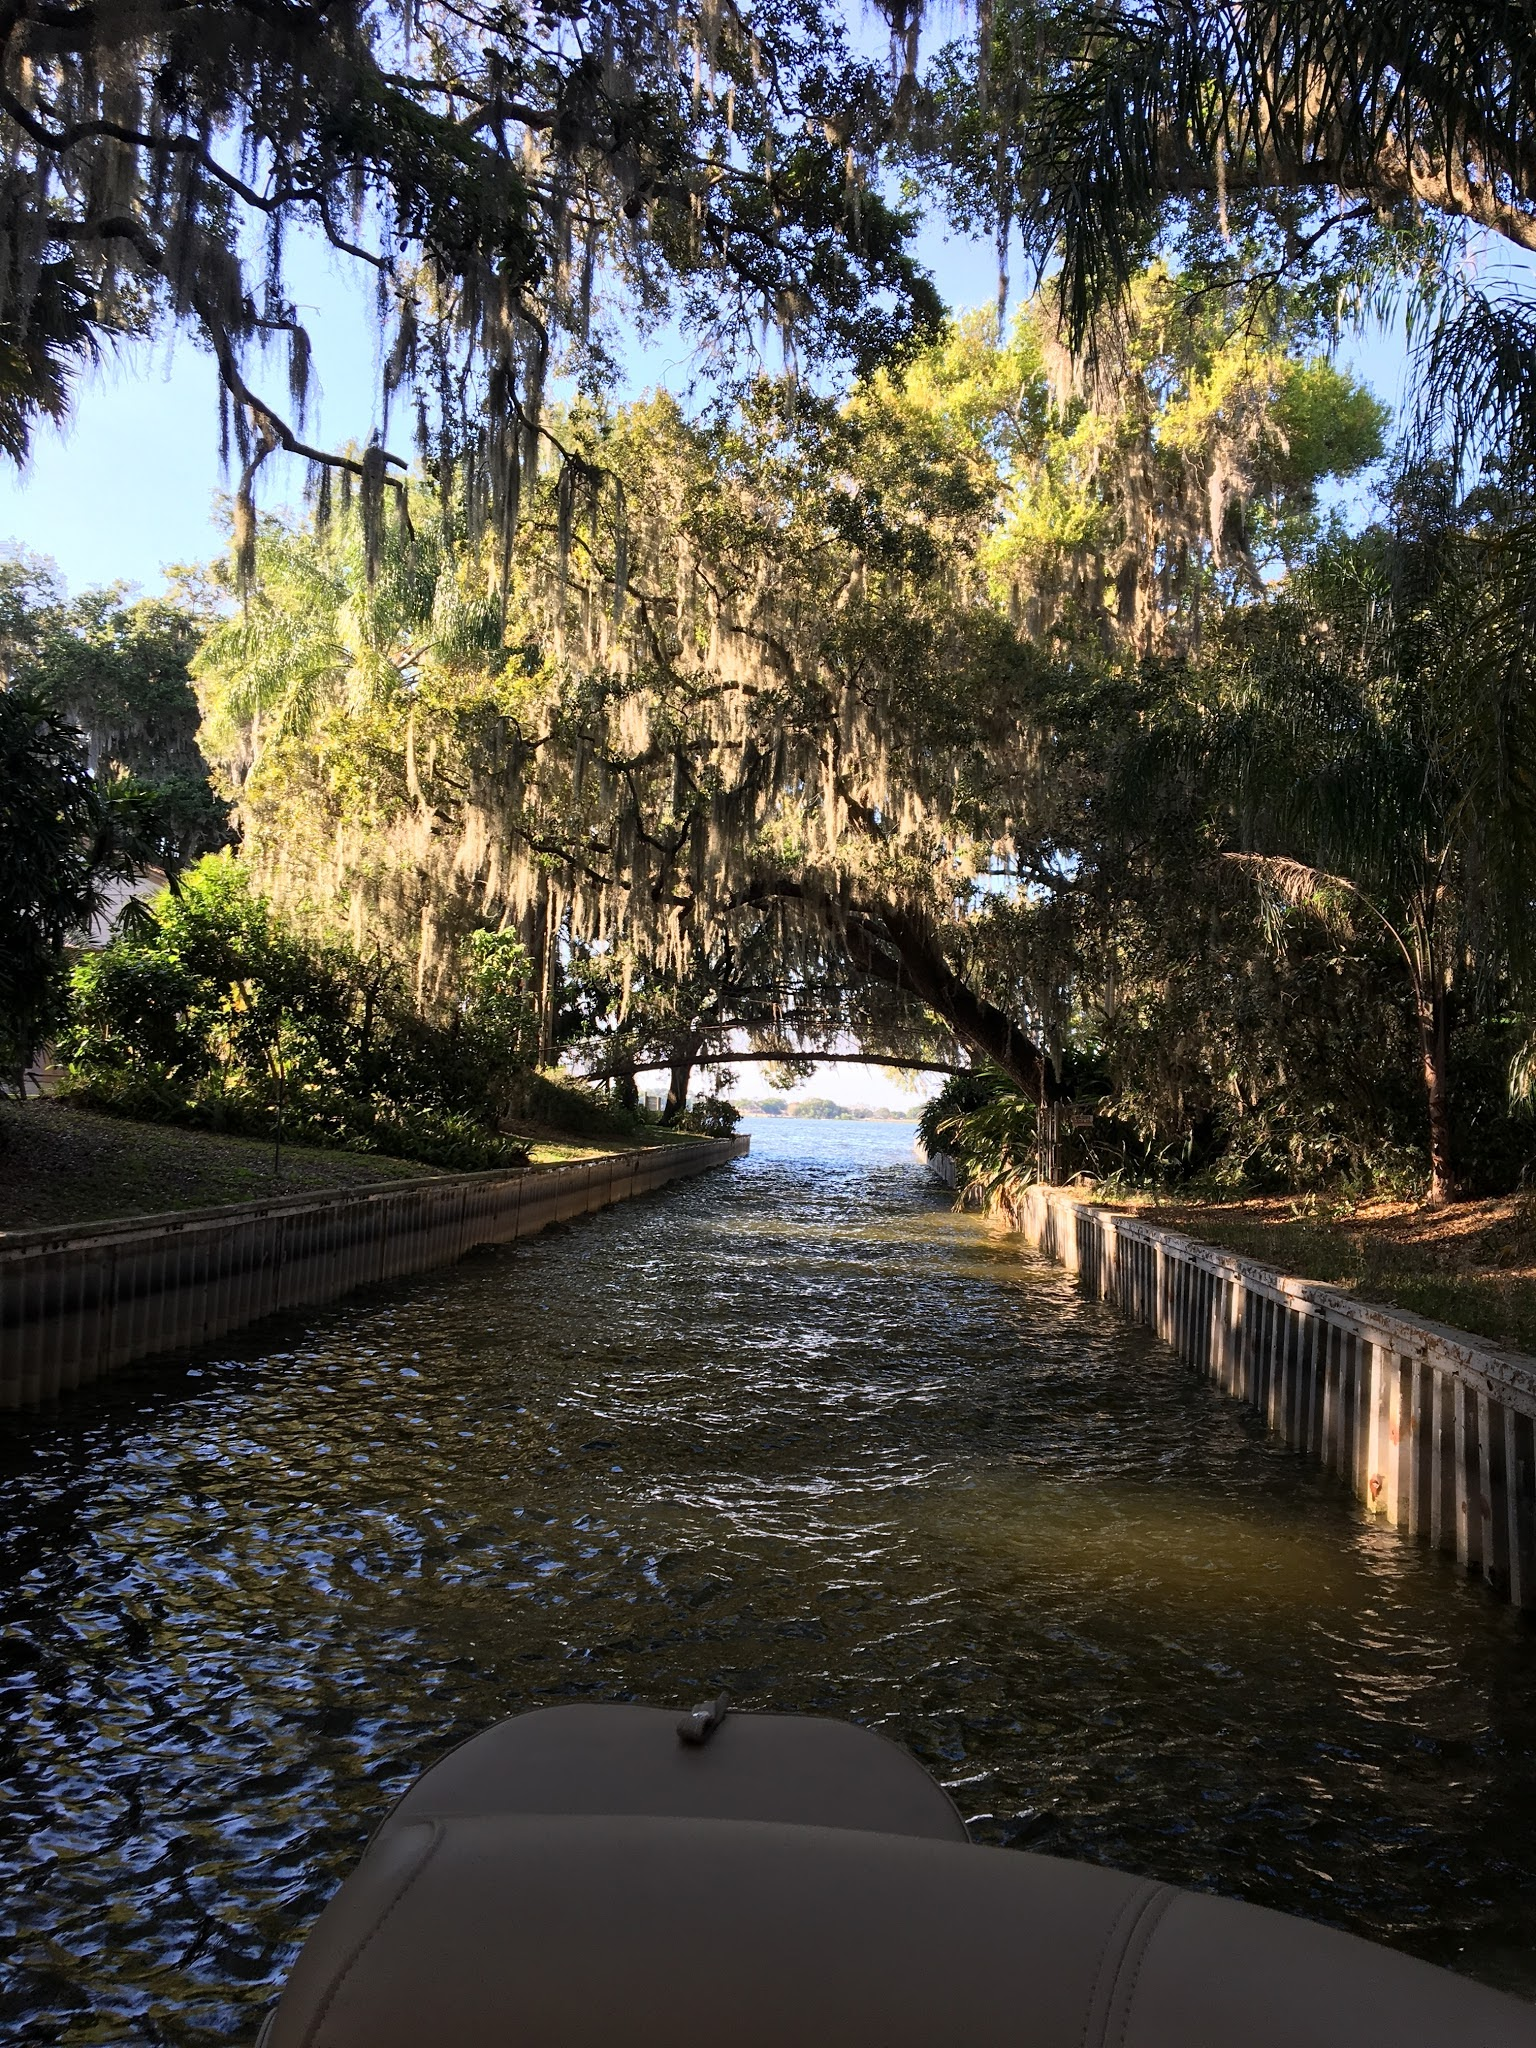 Winter haven canal.jpg